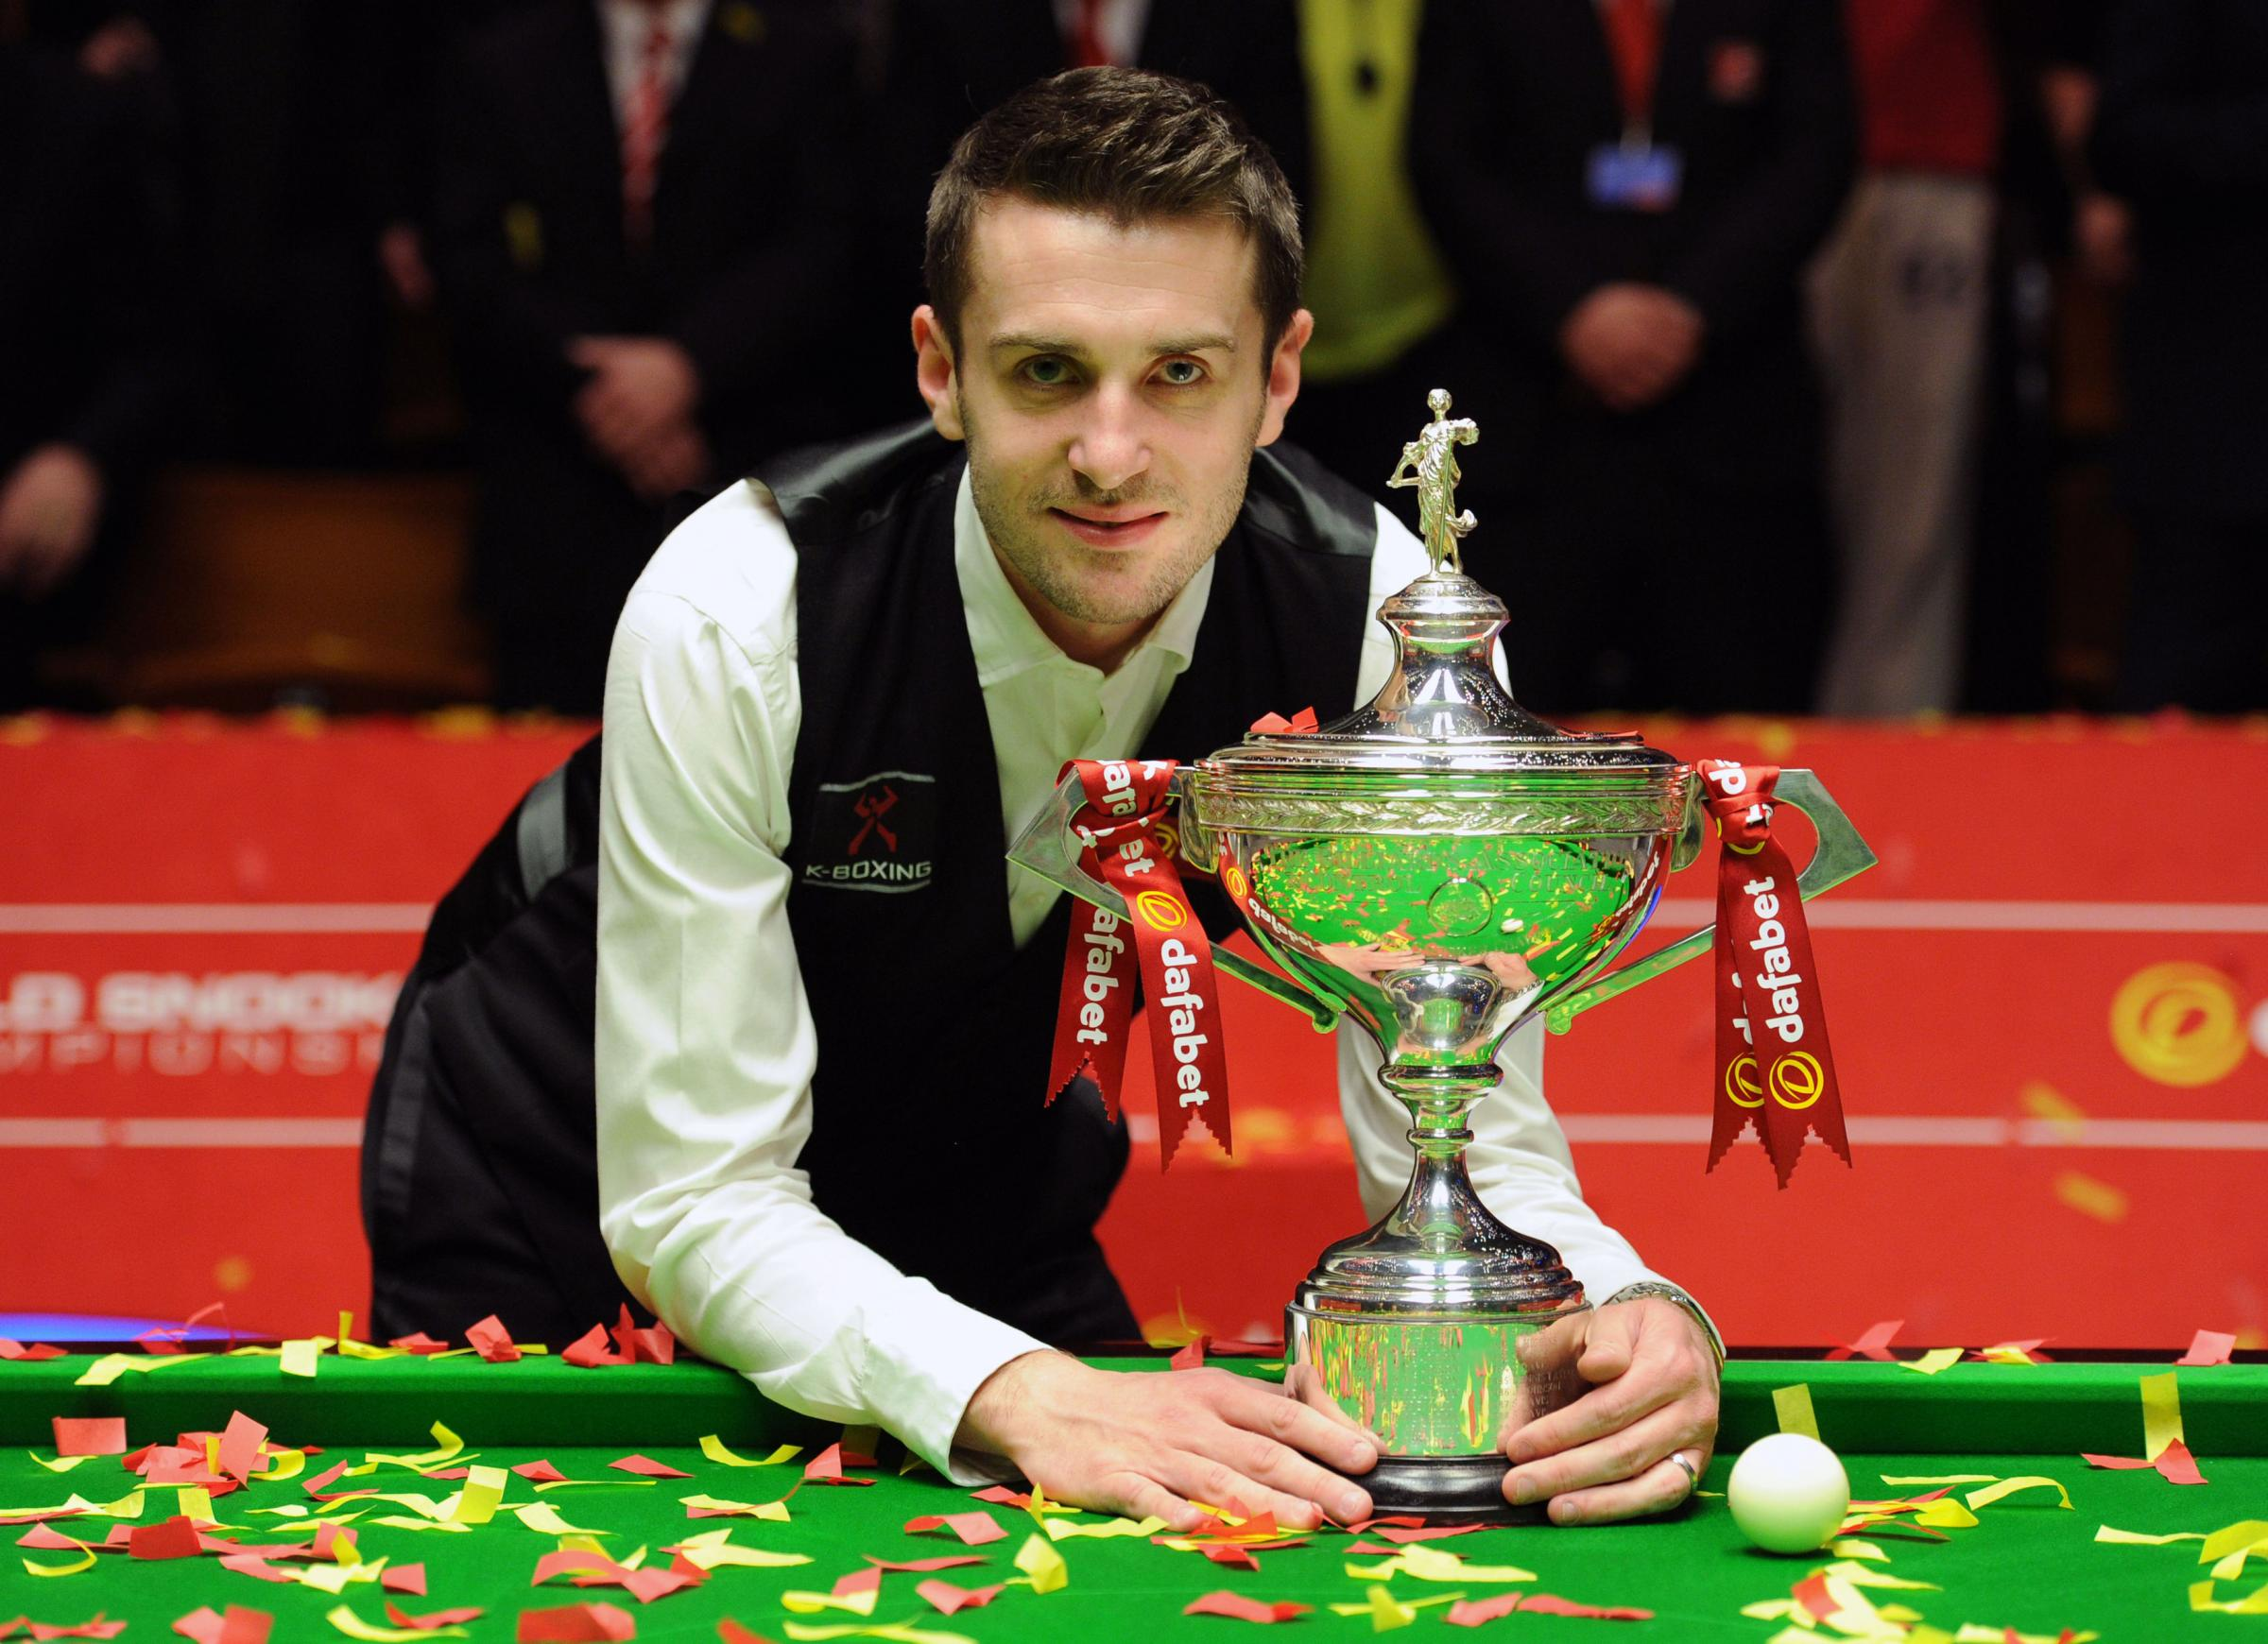 New snooker world champion Mark Selby